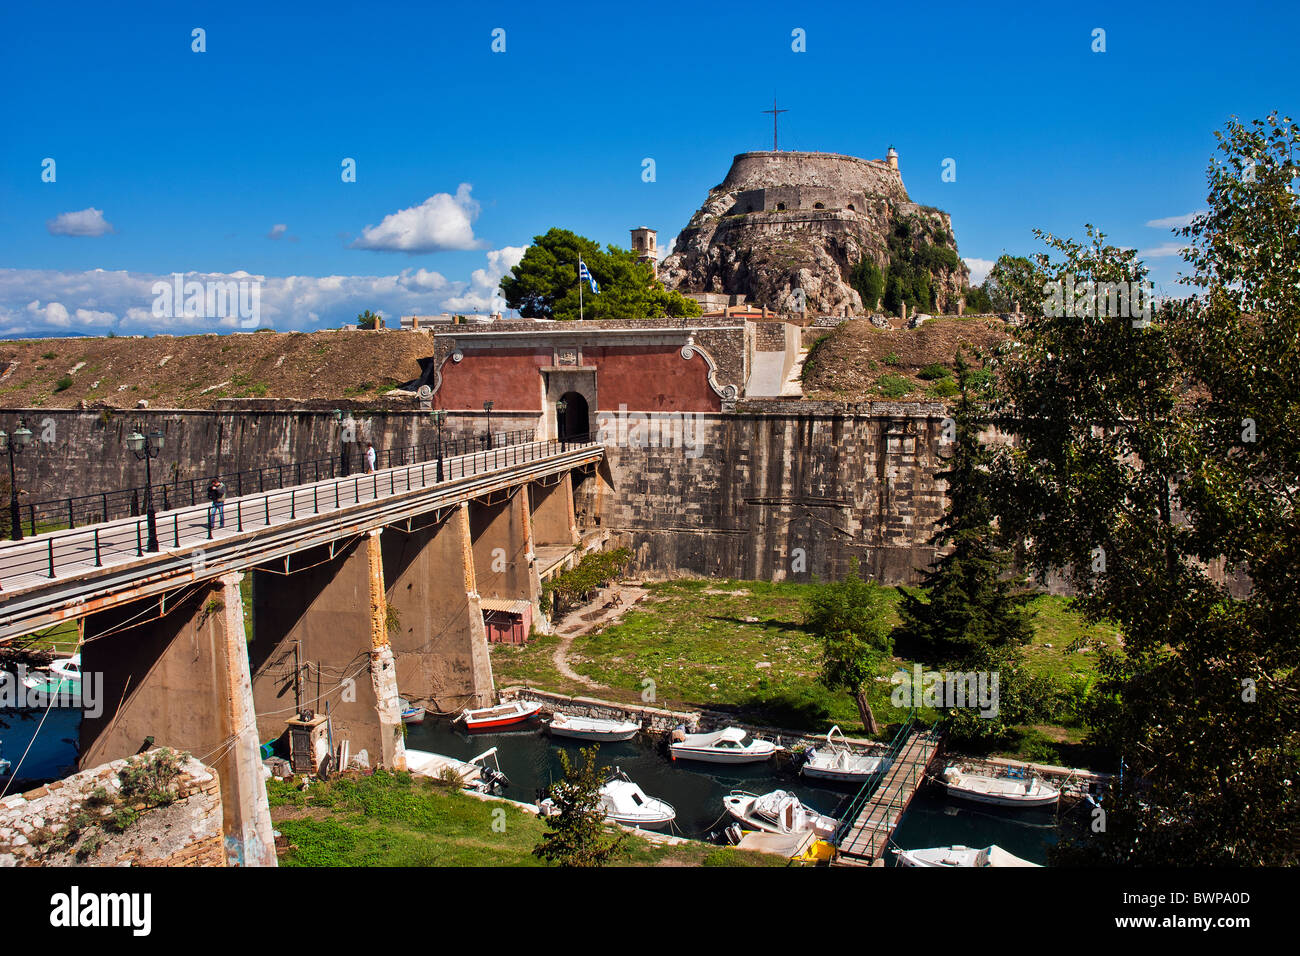 The Old Fortress in Corfu Town, Ionian Islands Greece. Stock Photo